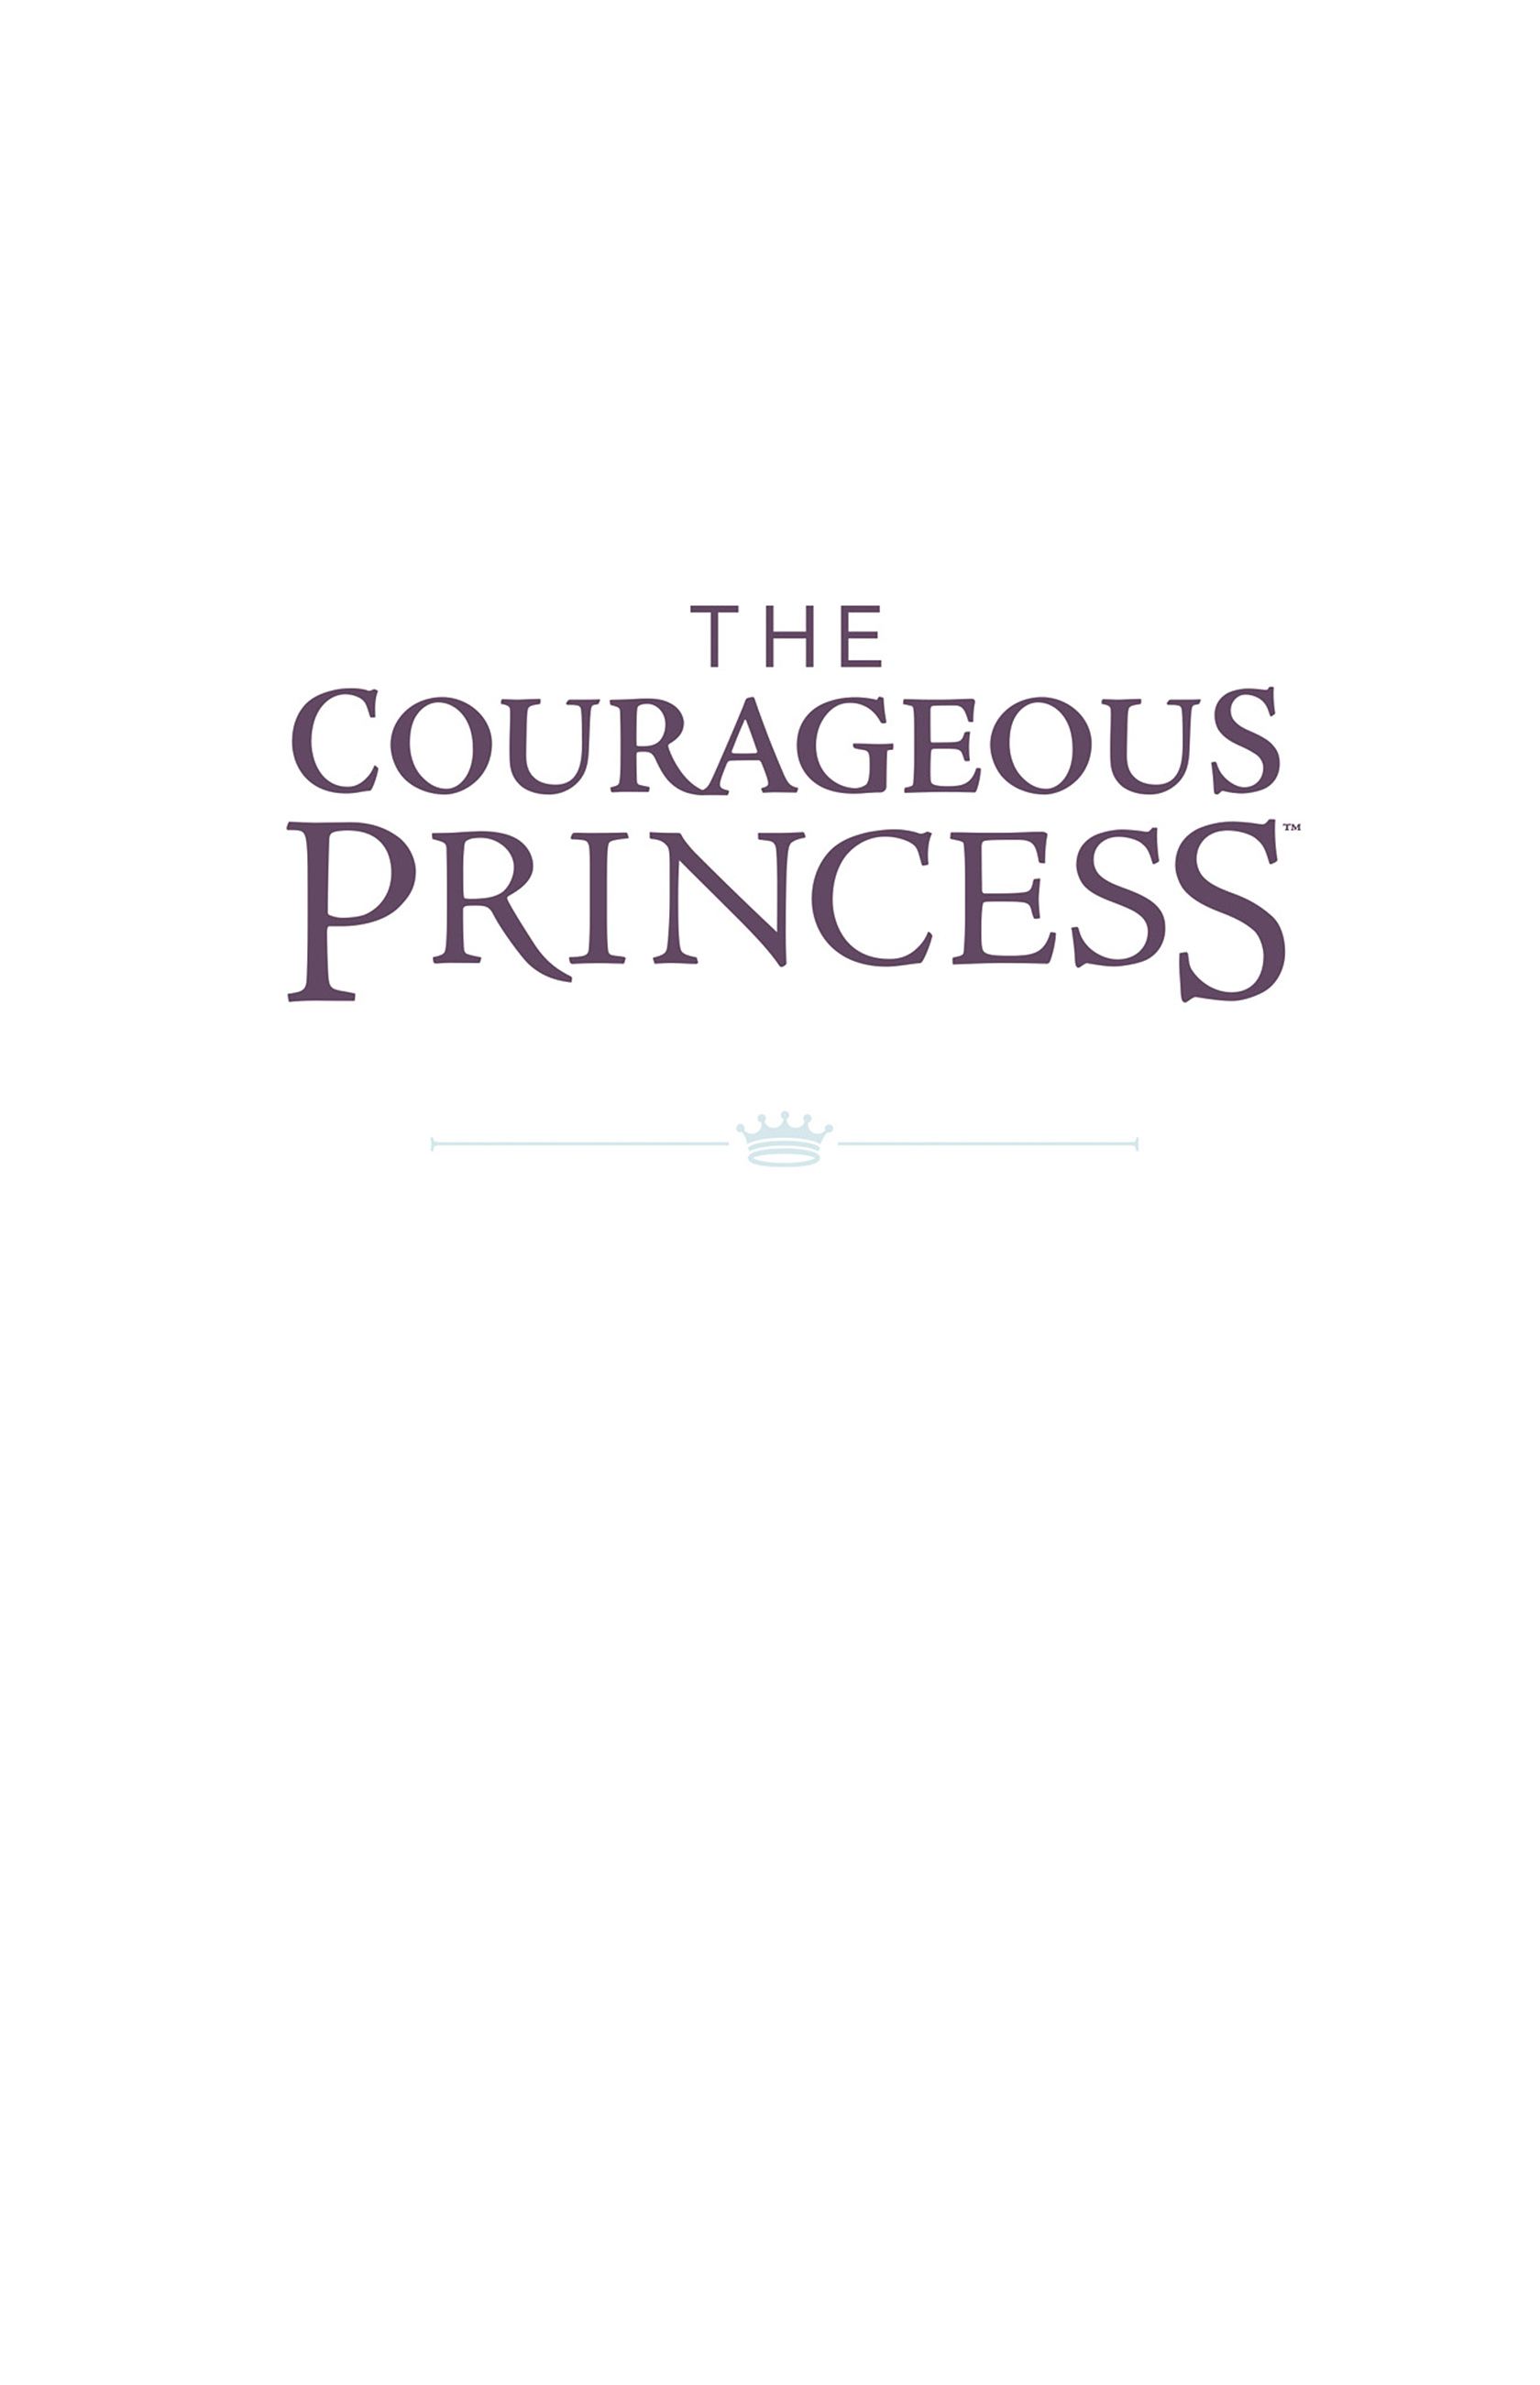 Read online Courageous Princess comic -  Issue # TPB 1 - 2